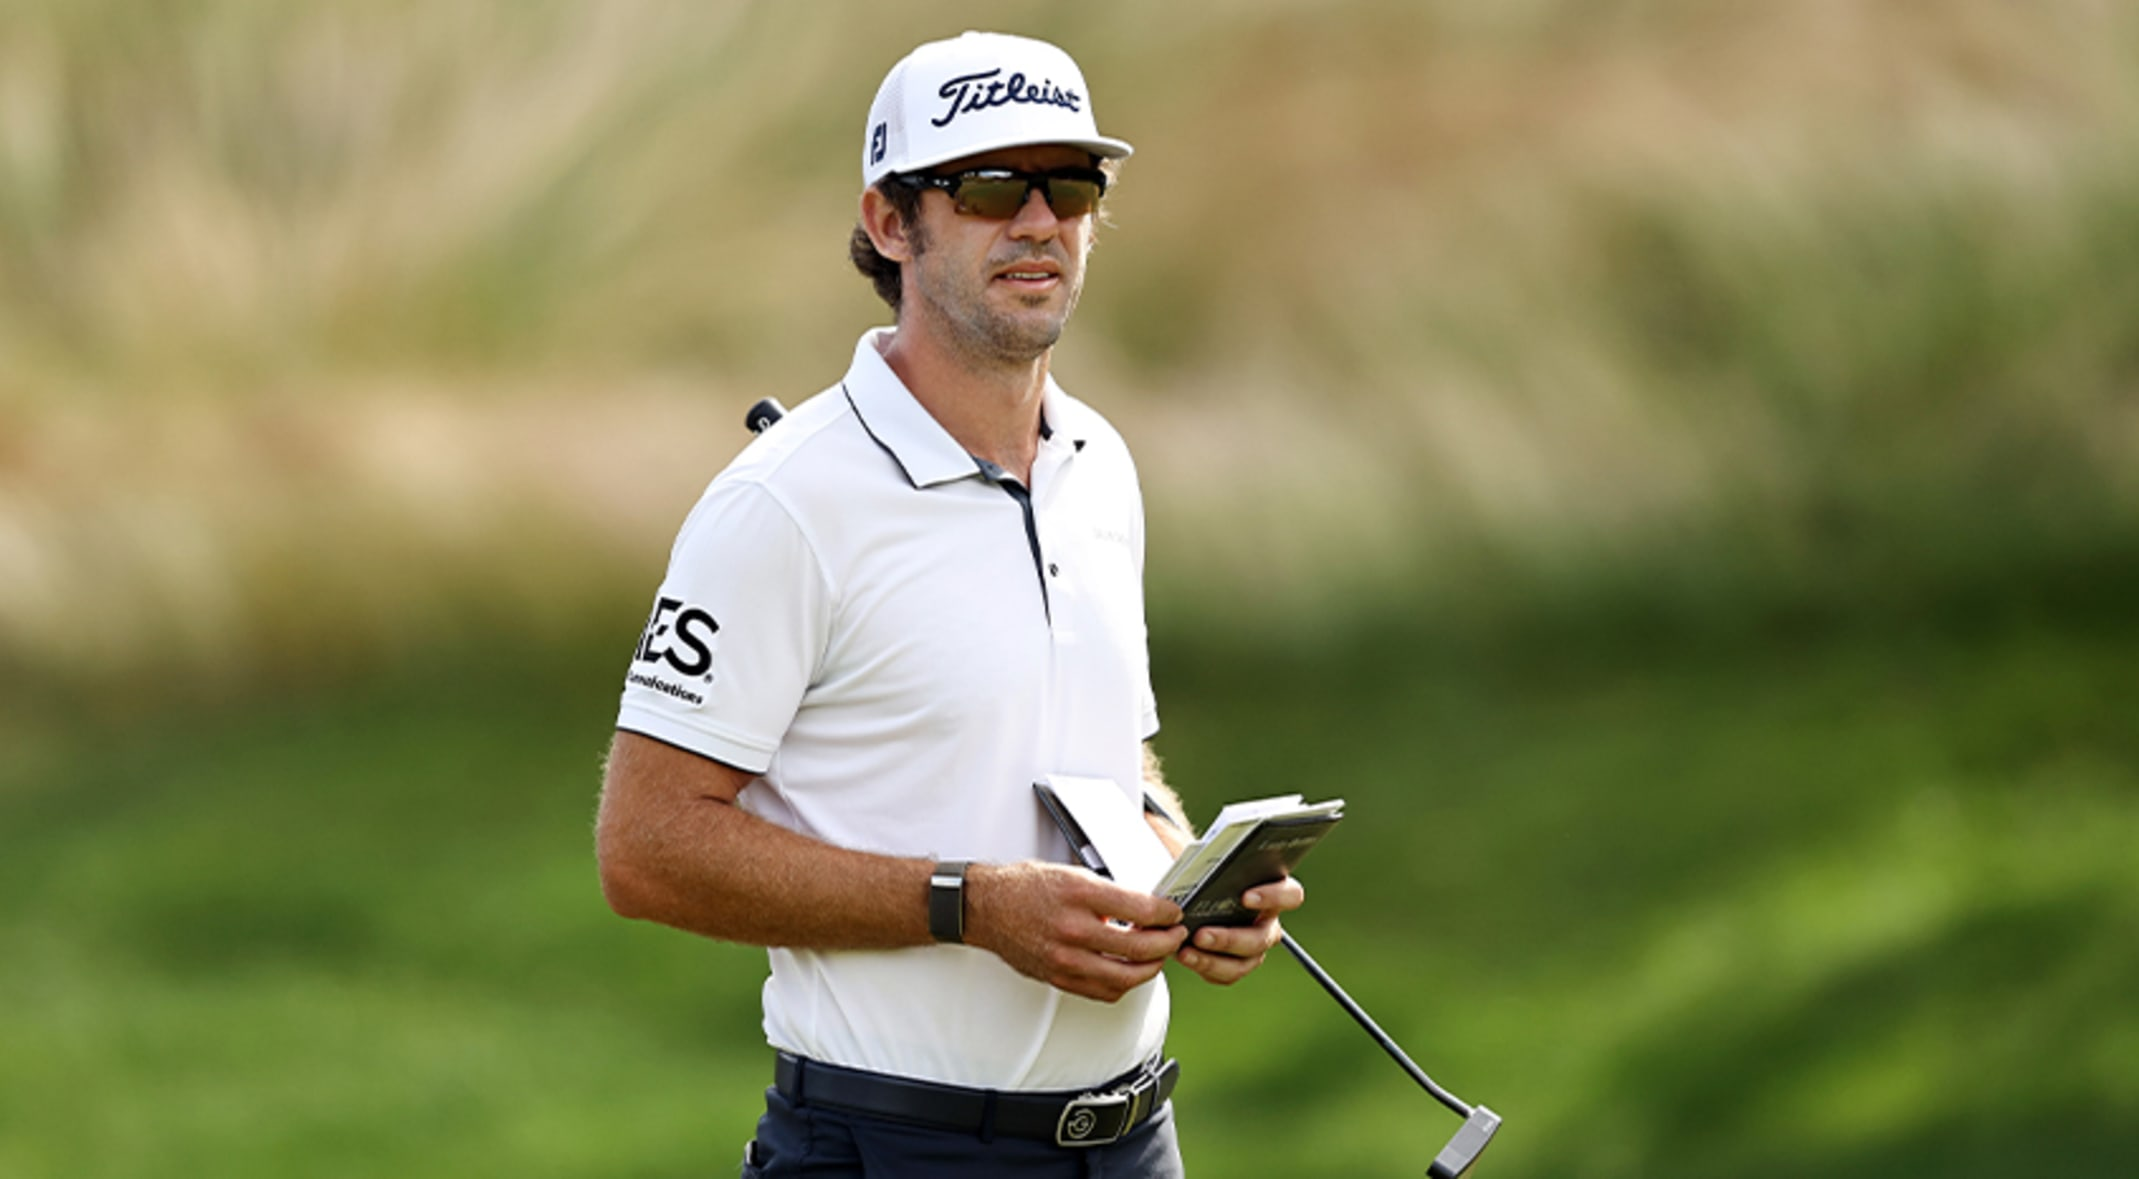 The Players' Tribune: Lanto's rise in golf something he won't take for  granted